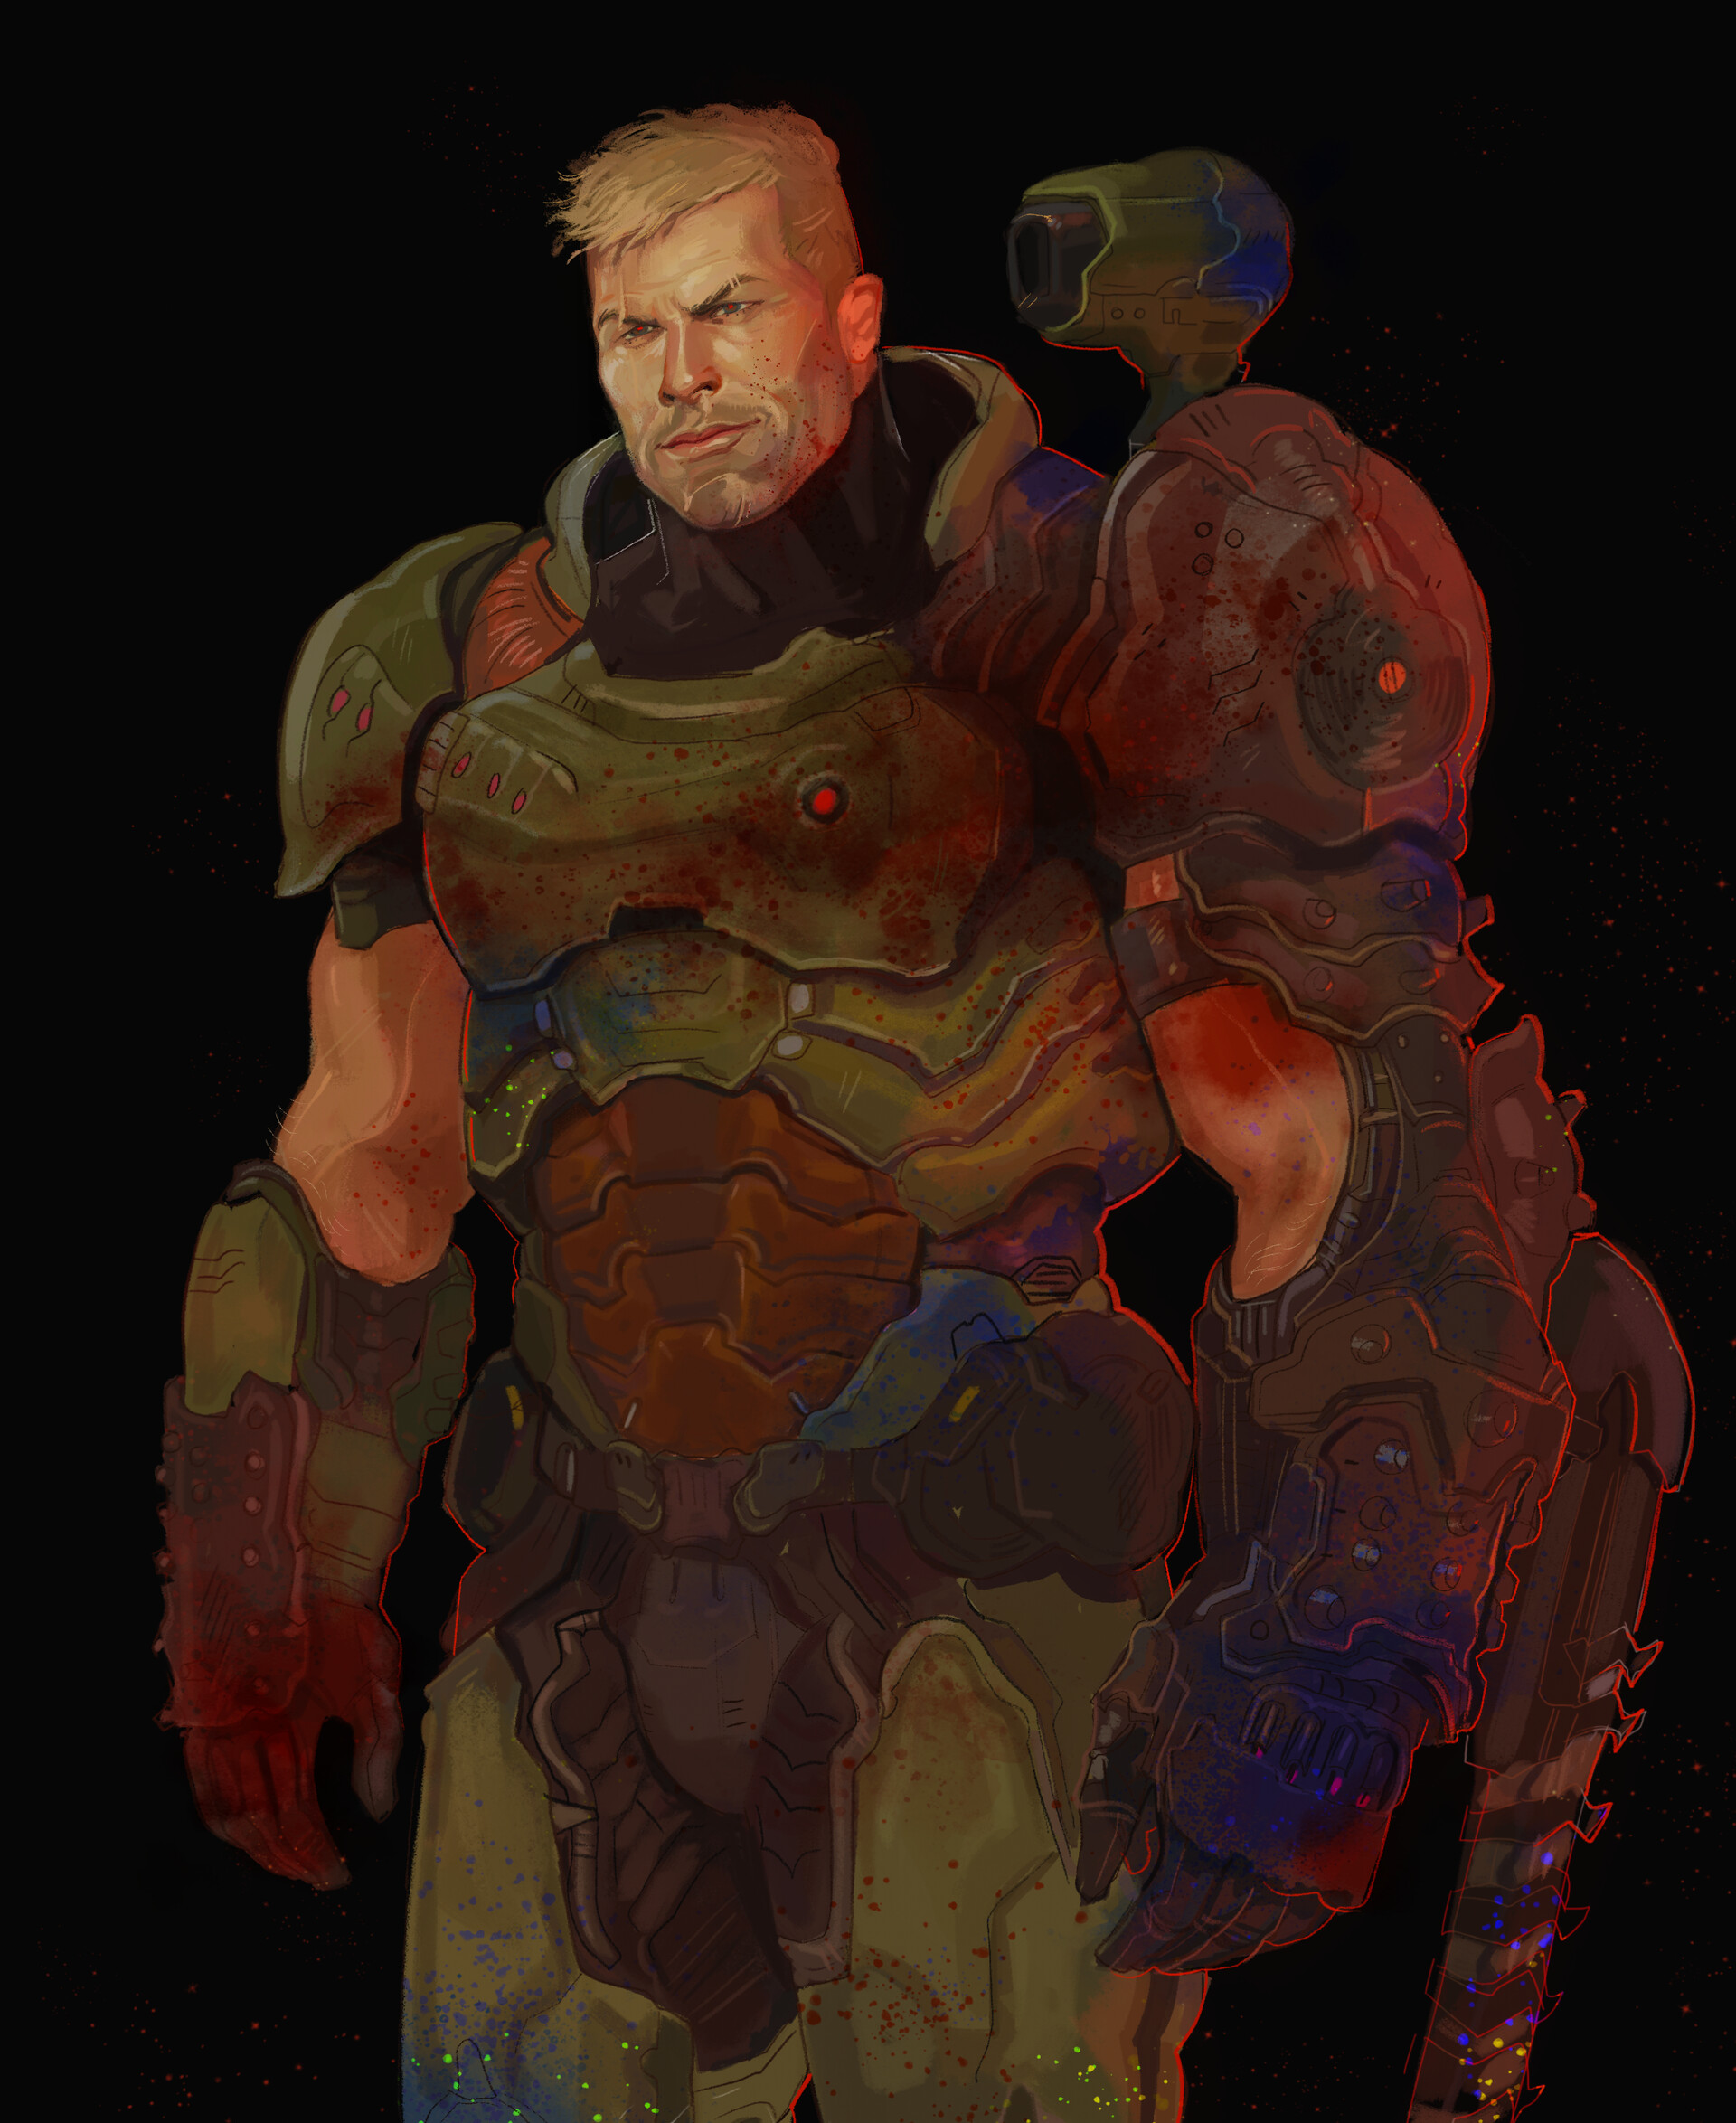 doom guy no armor